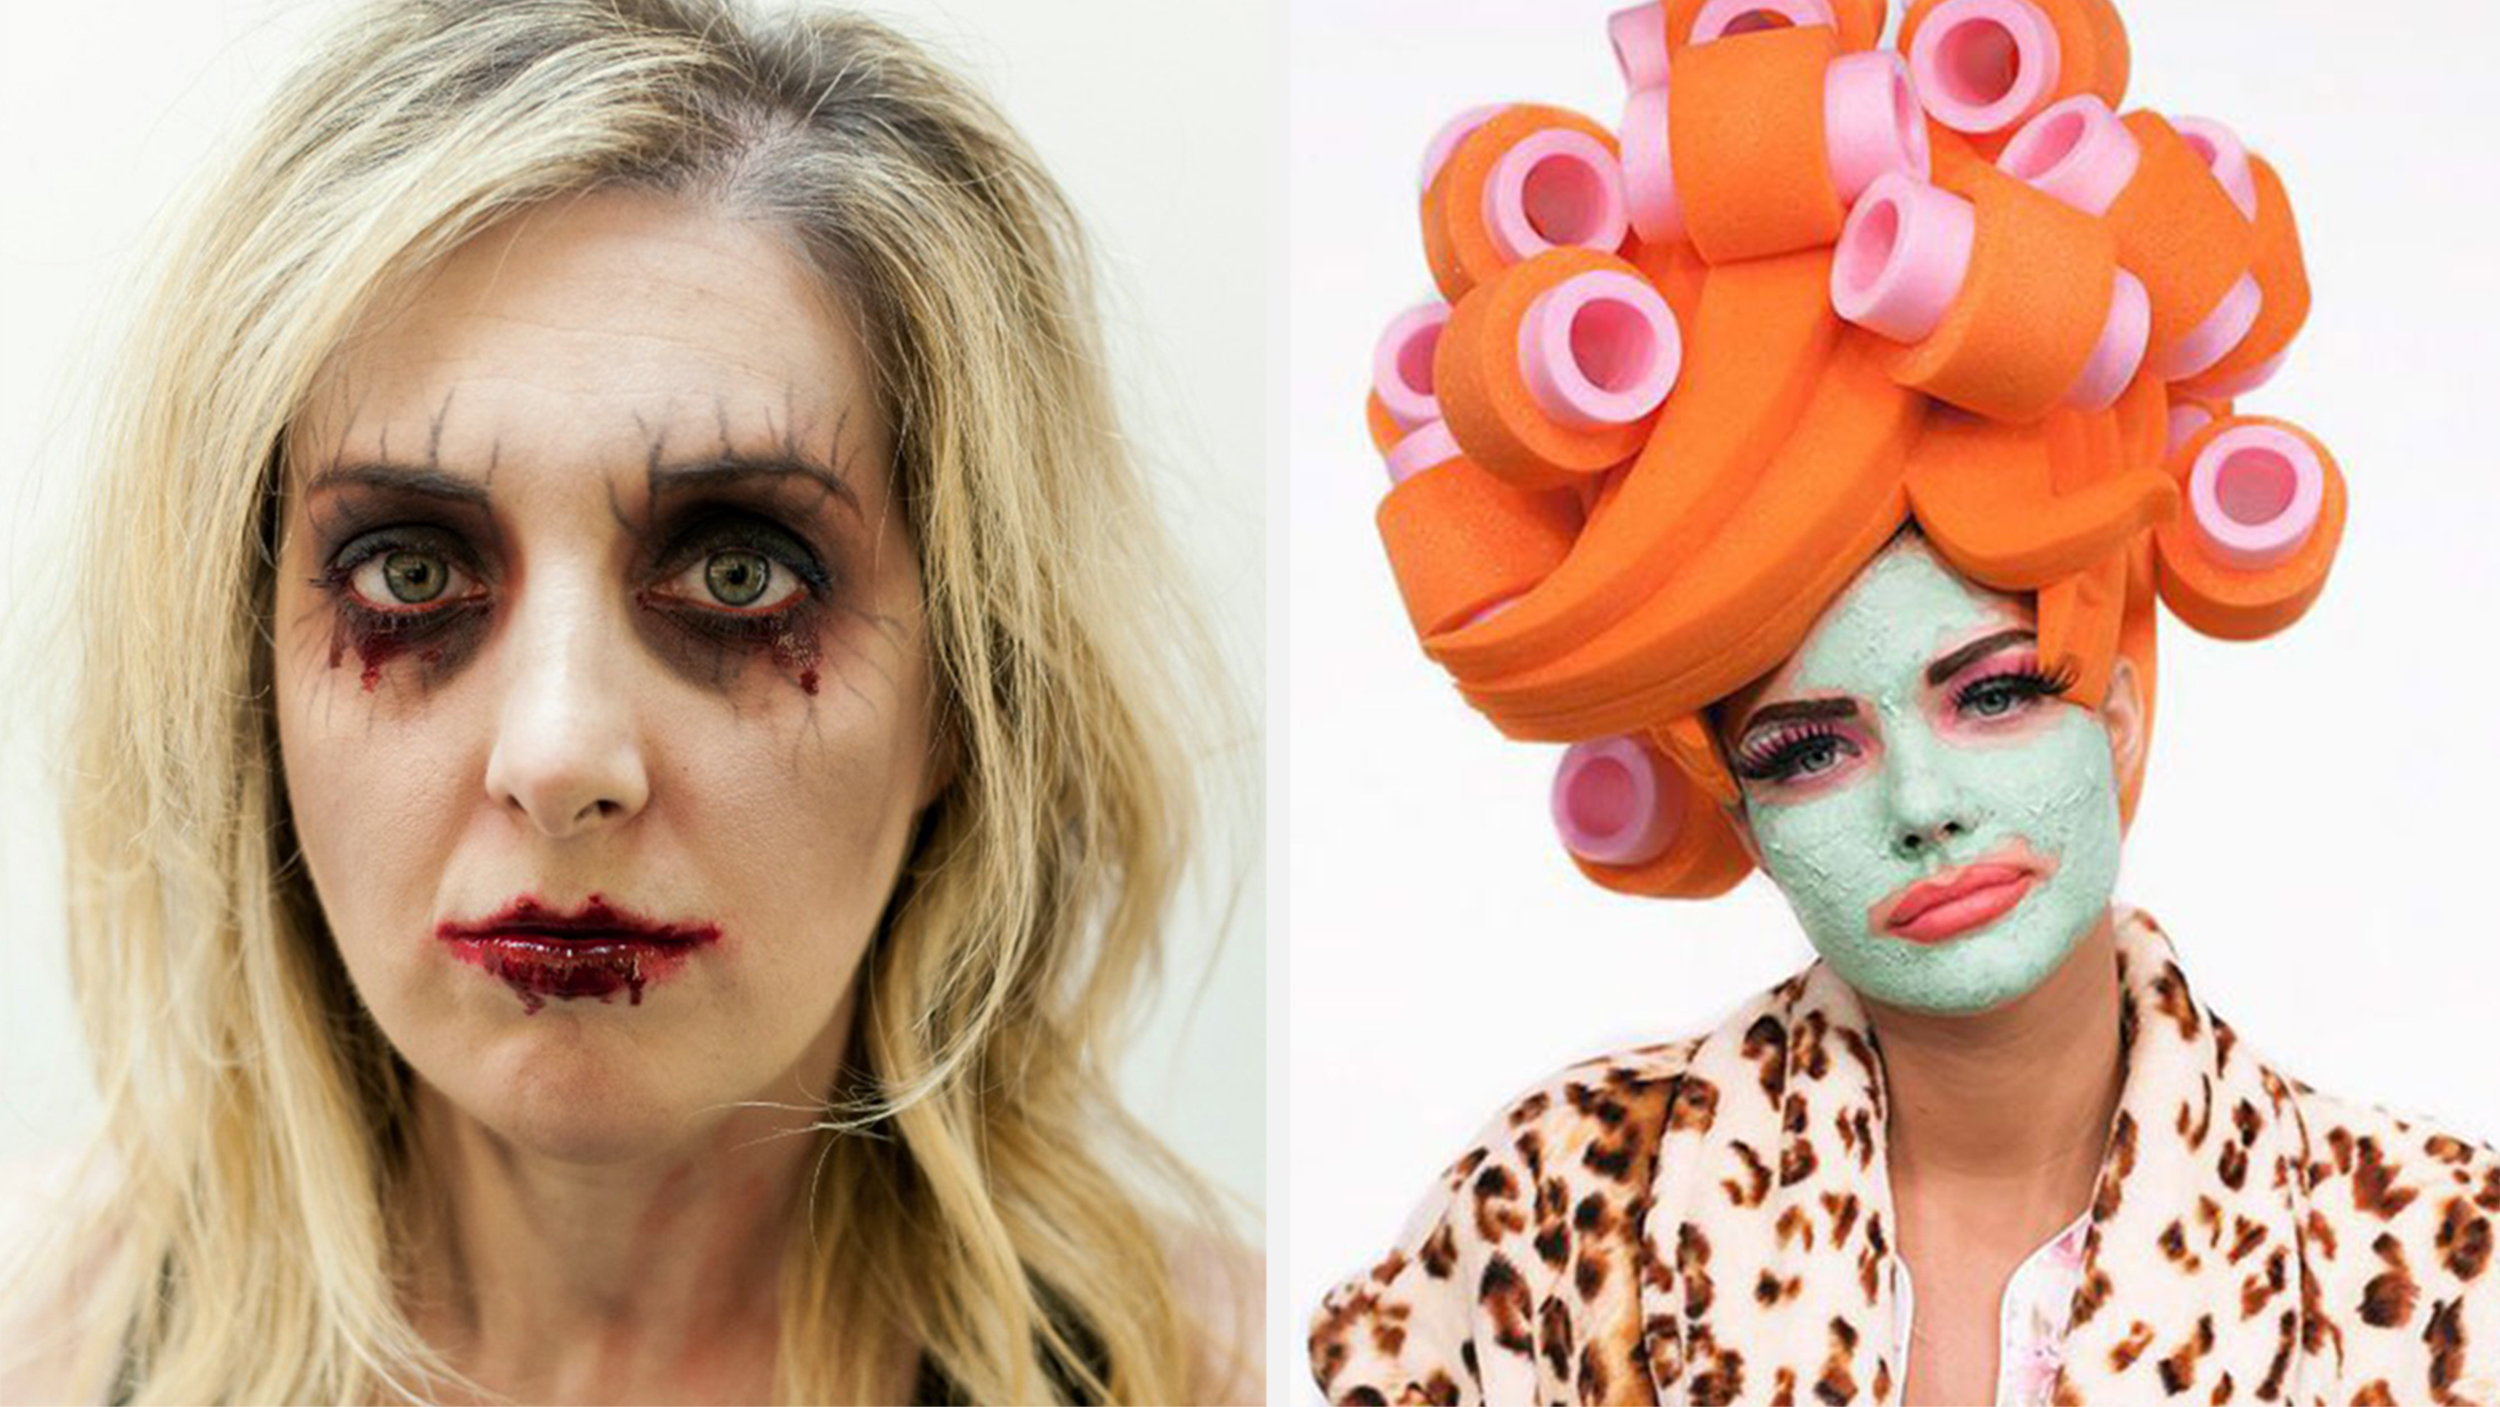 Forum on this topic: 23 Easy, Last-Minute Halloween Makeup Looks, 23-easy-last-minute-halloween-makeup-looks/